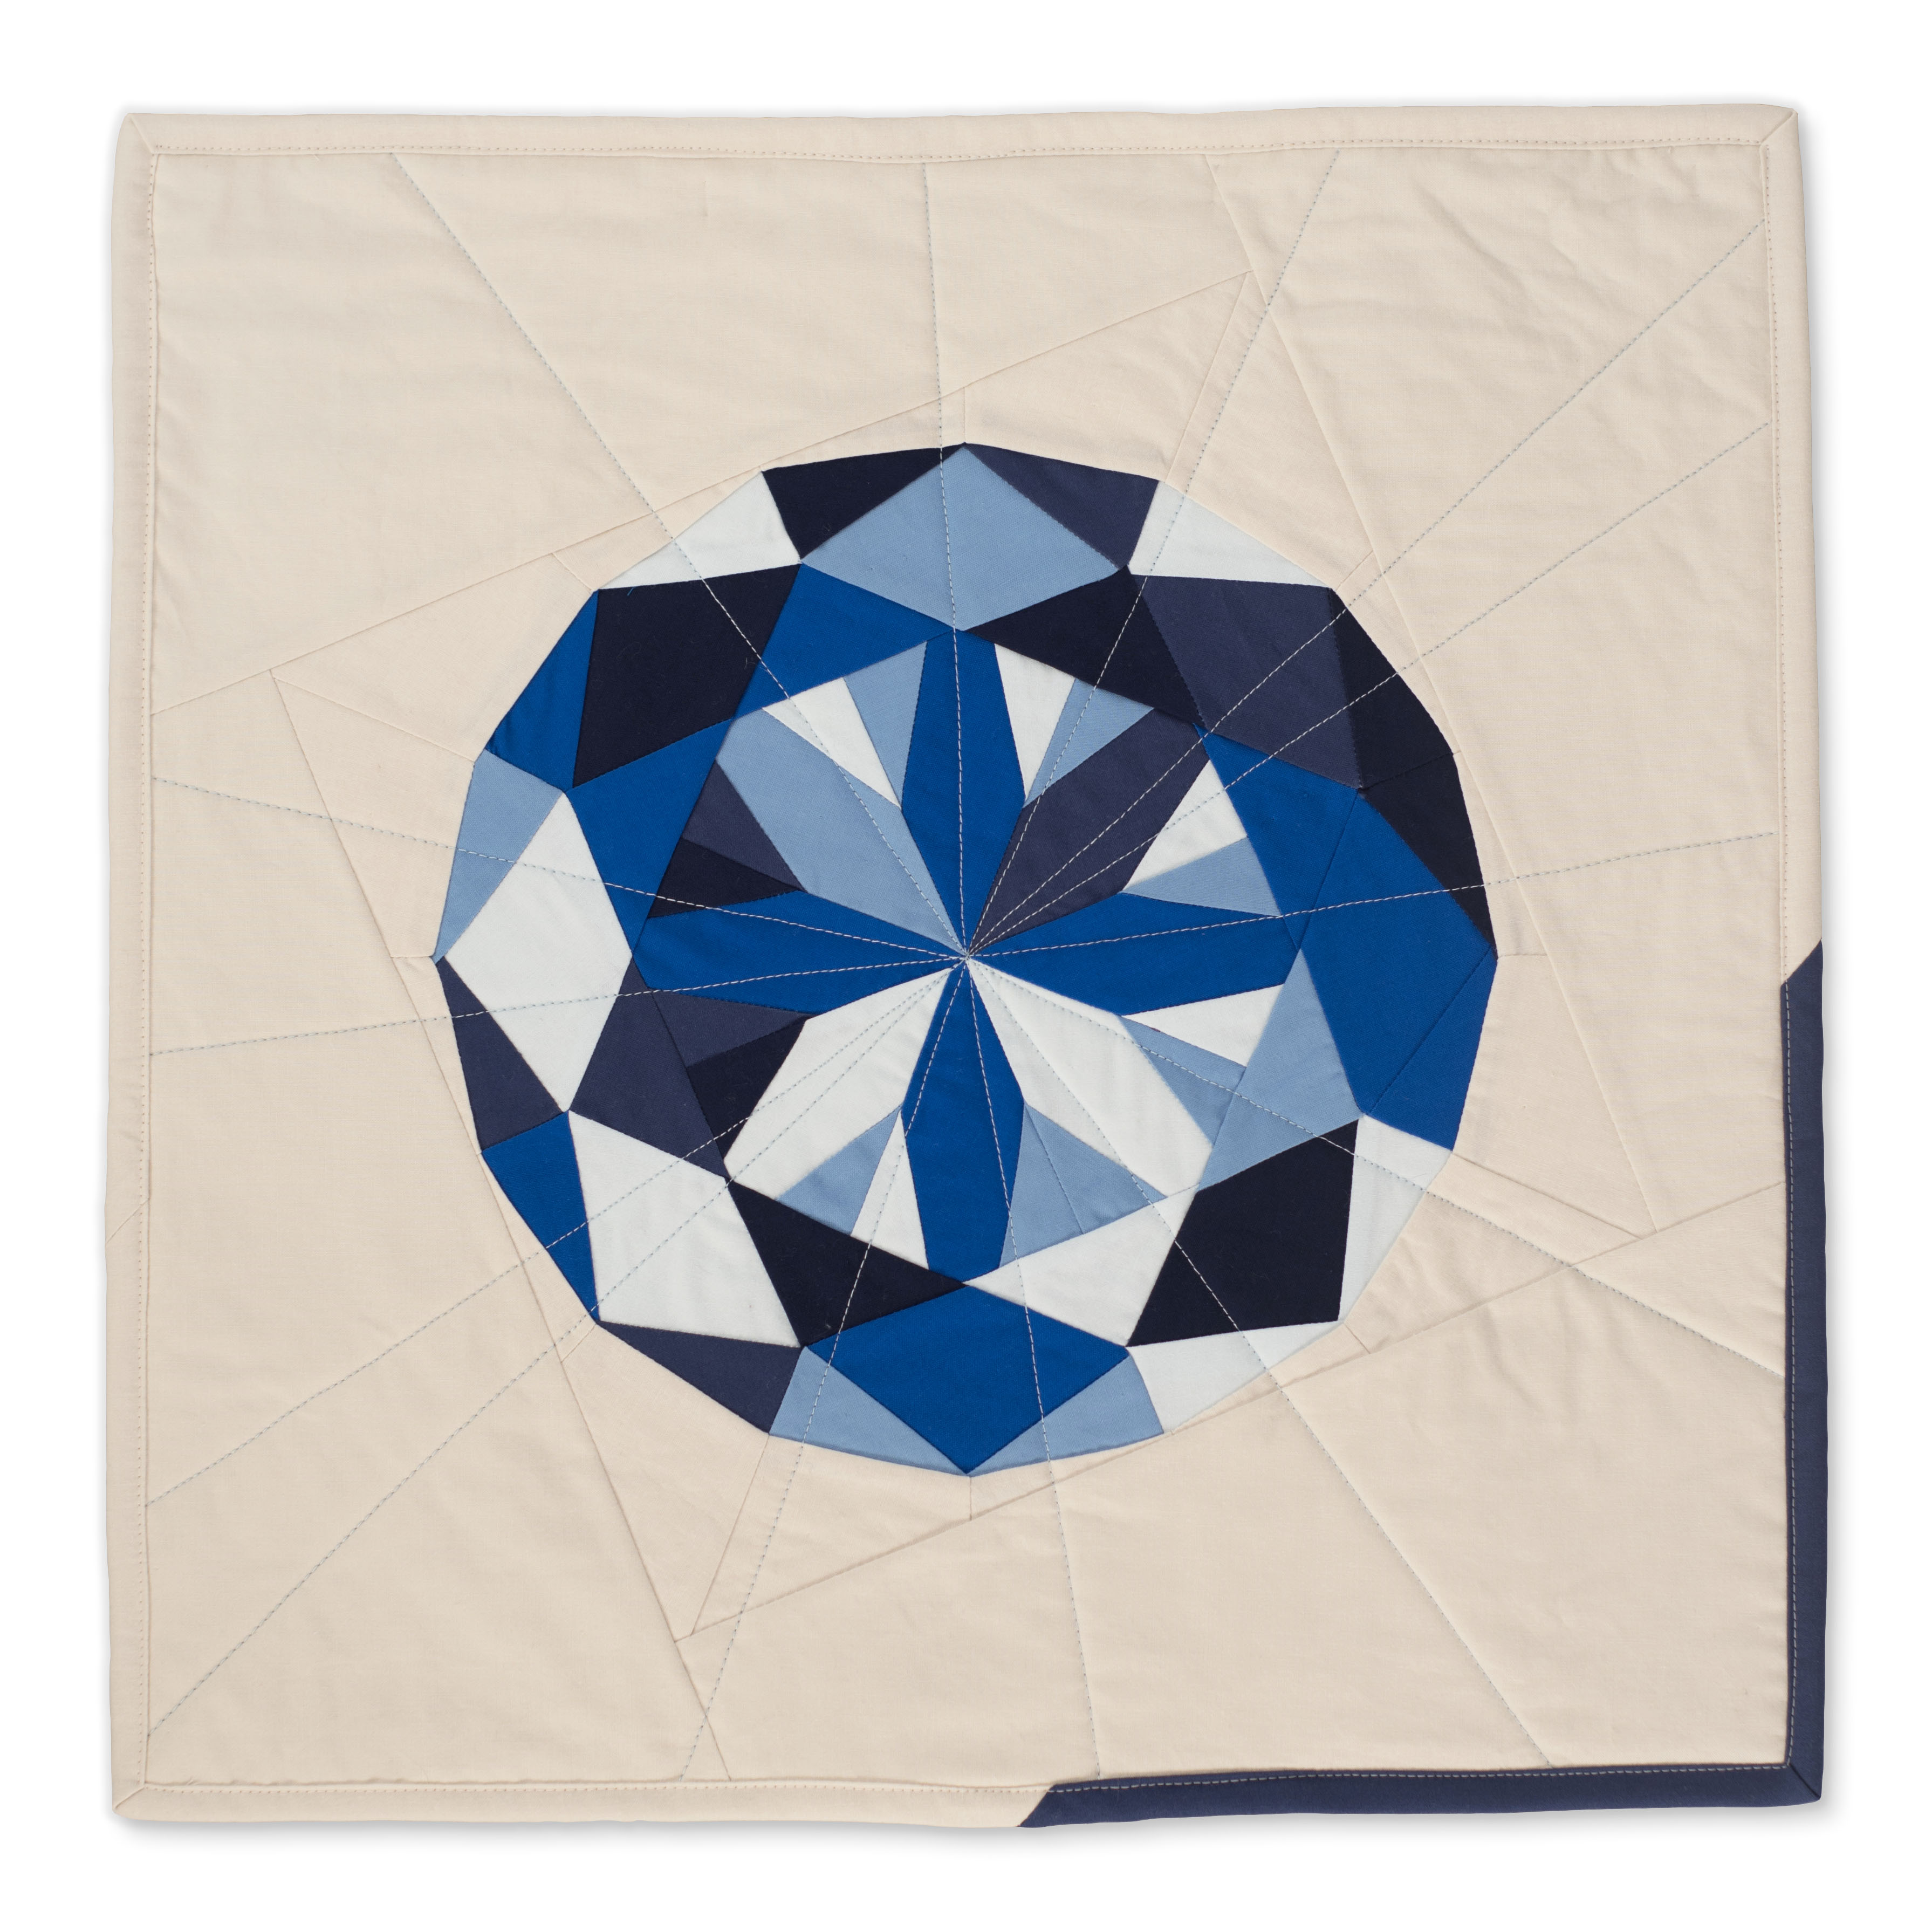 "<b>Sapphire</b><br>20"" x 20""<br>Cotton, cotton batting<br>SOLD"